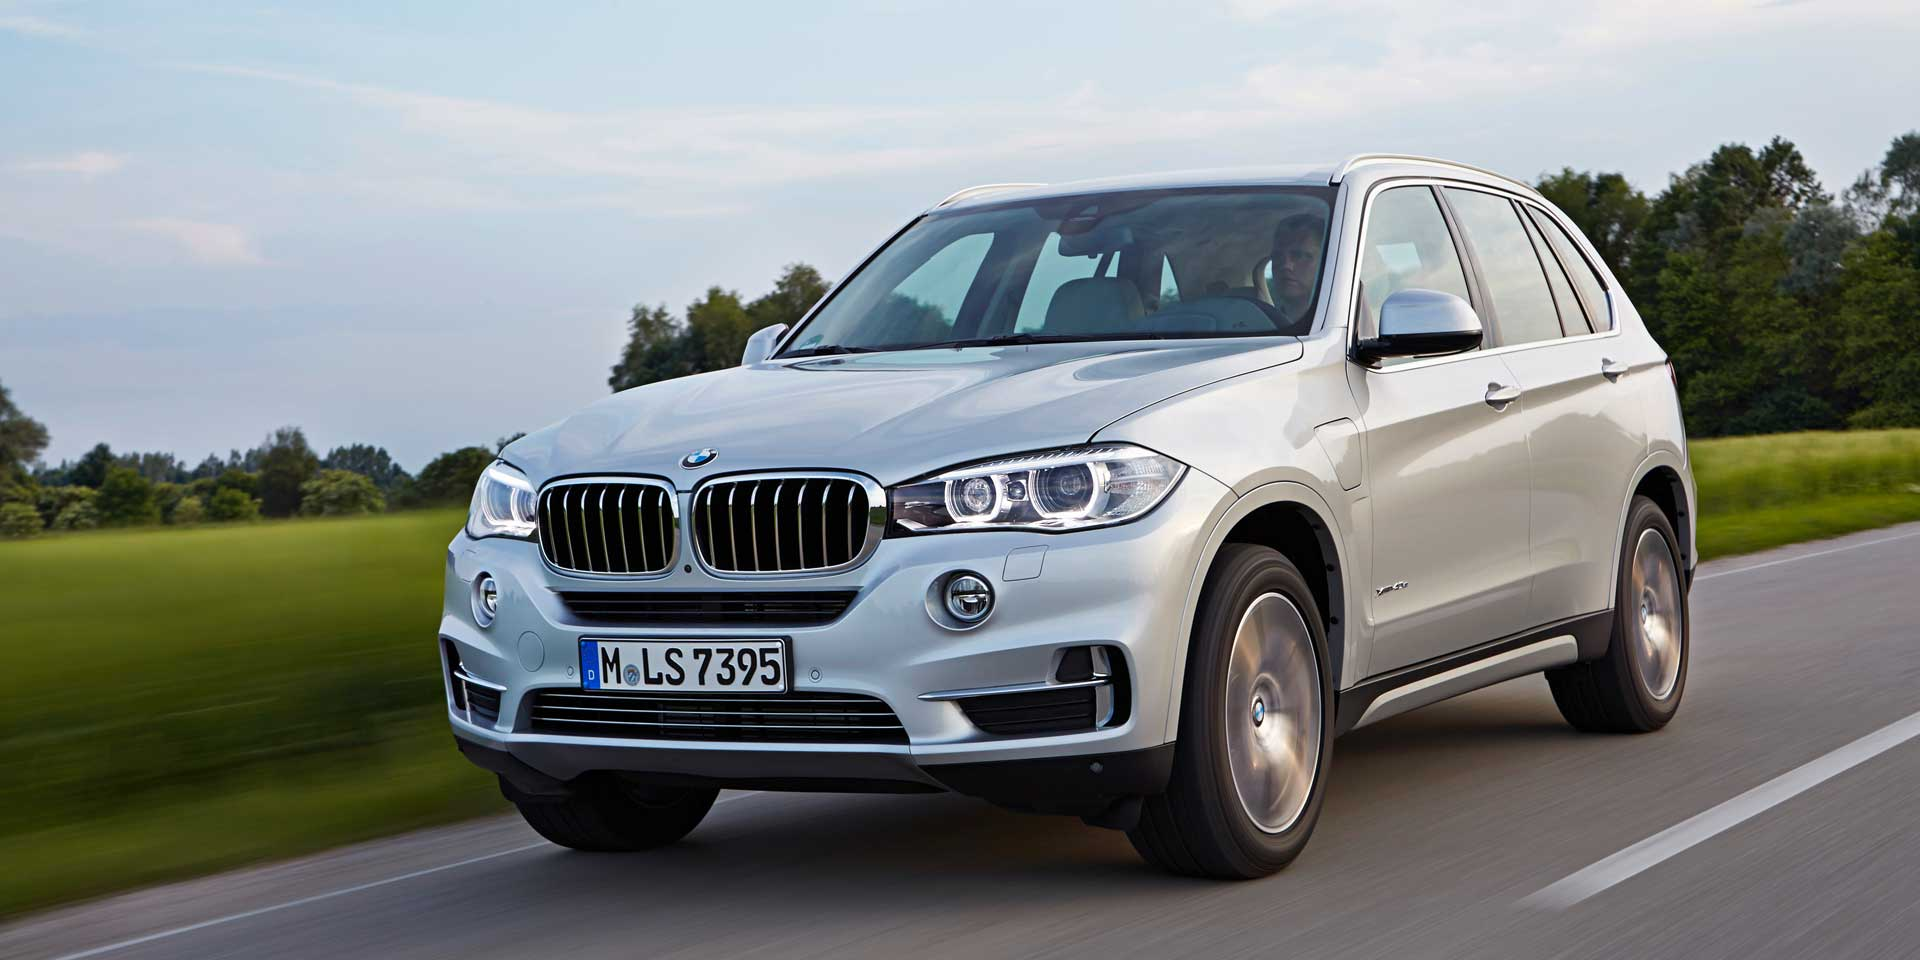 2018 bmw x5 vehicles on display chicago auto show. Black Bedroom Furniture Sets. Home Design Ideas